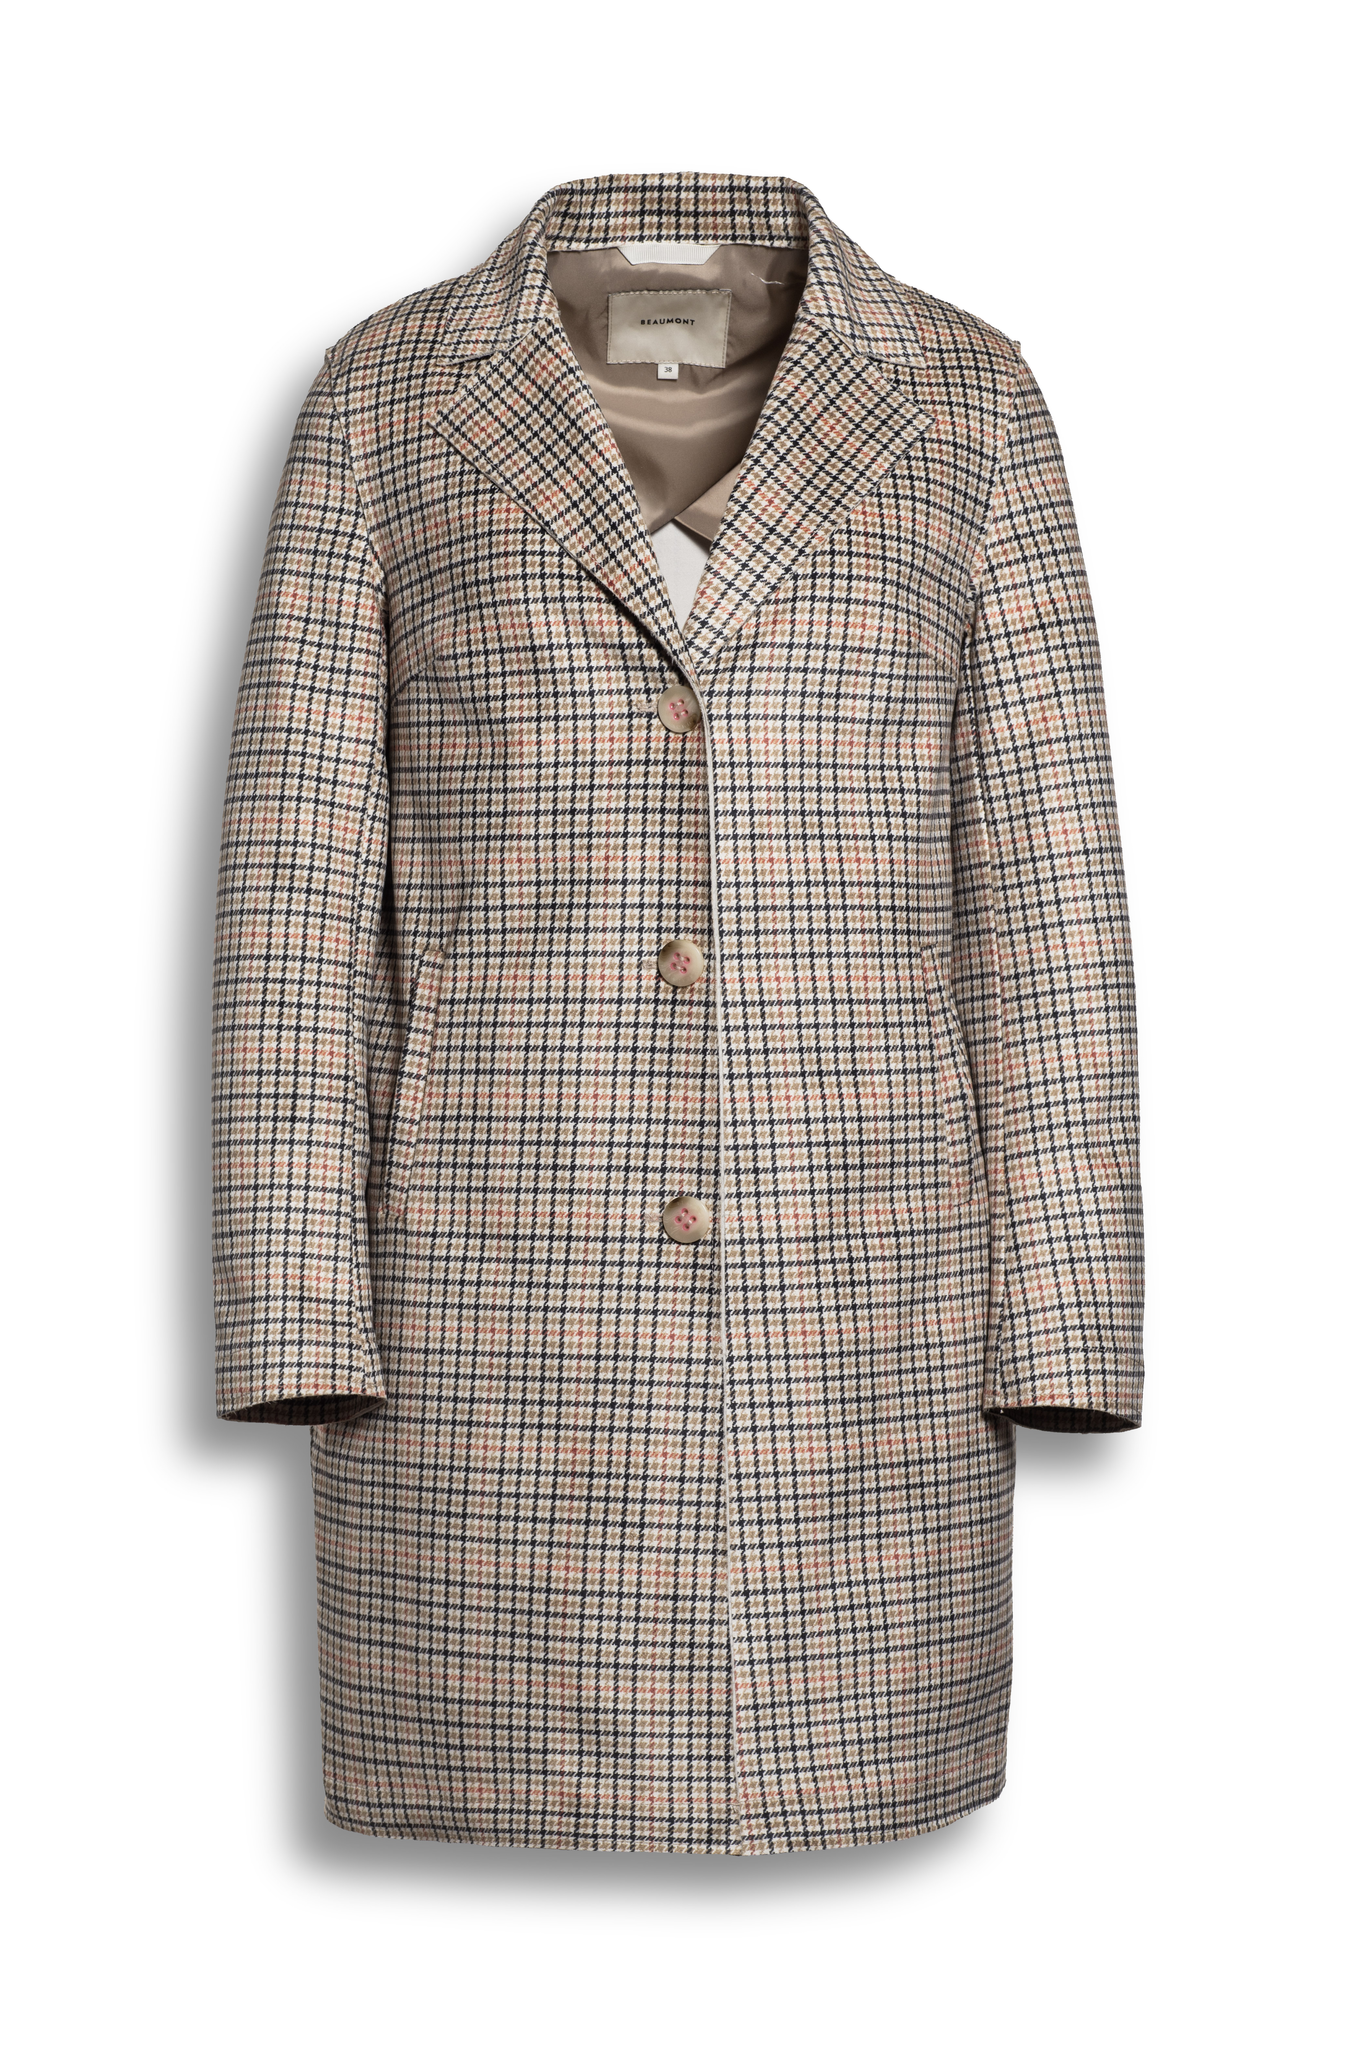 BEAUMONT Chequered Blazercoat Multicolour